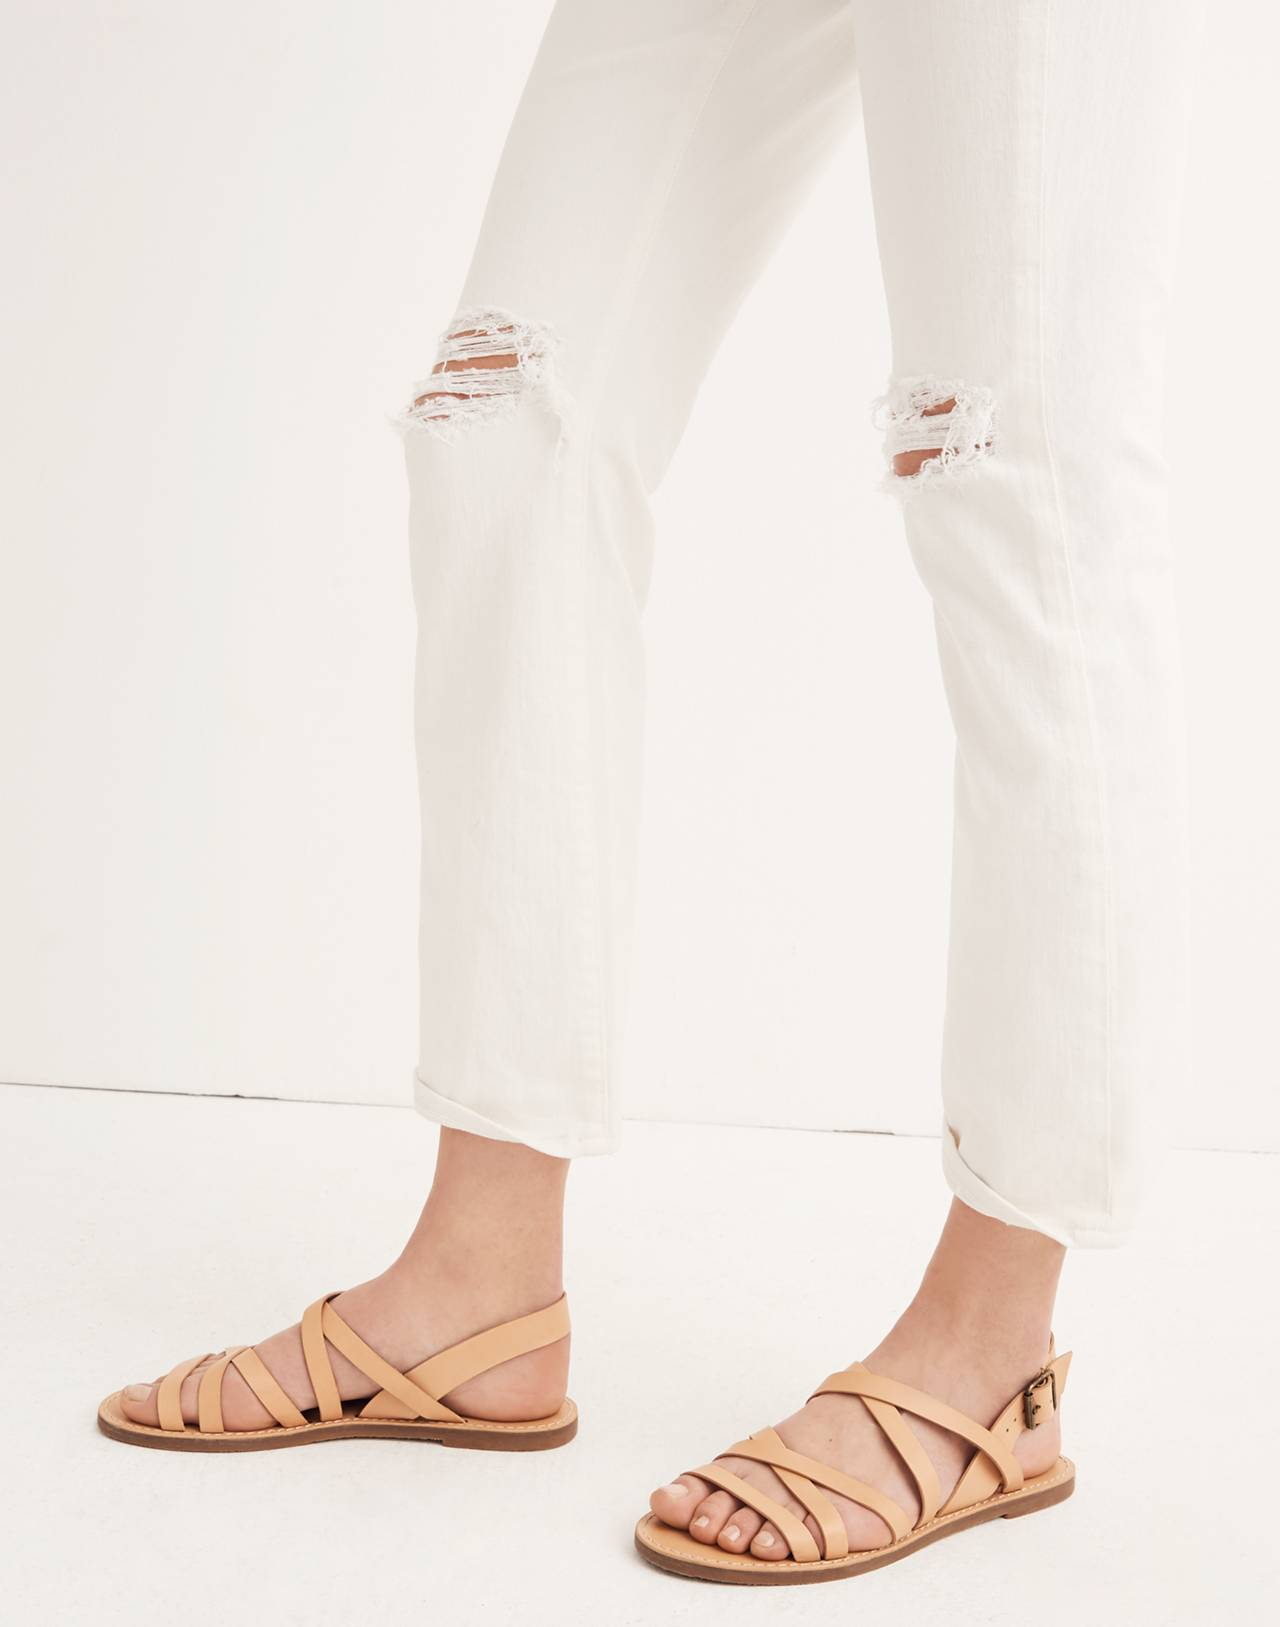 The Tall High-Rise Slim Boyjean in Tile White in tile white image 2